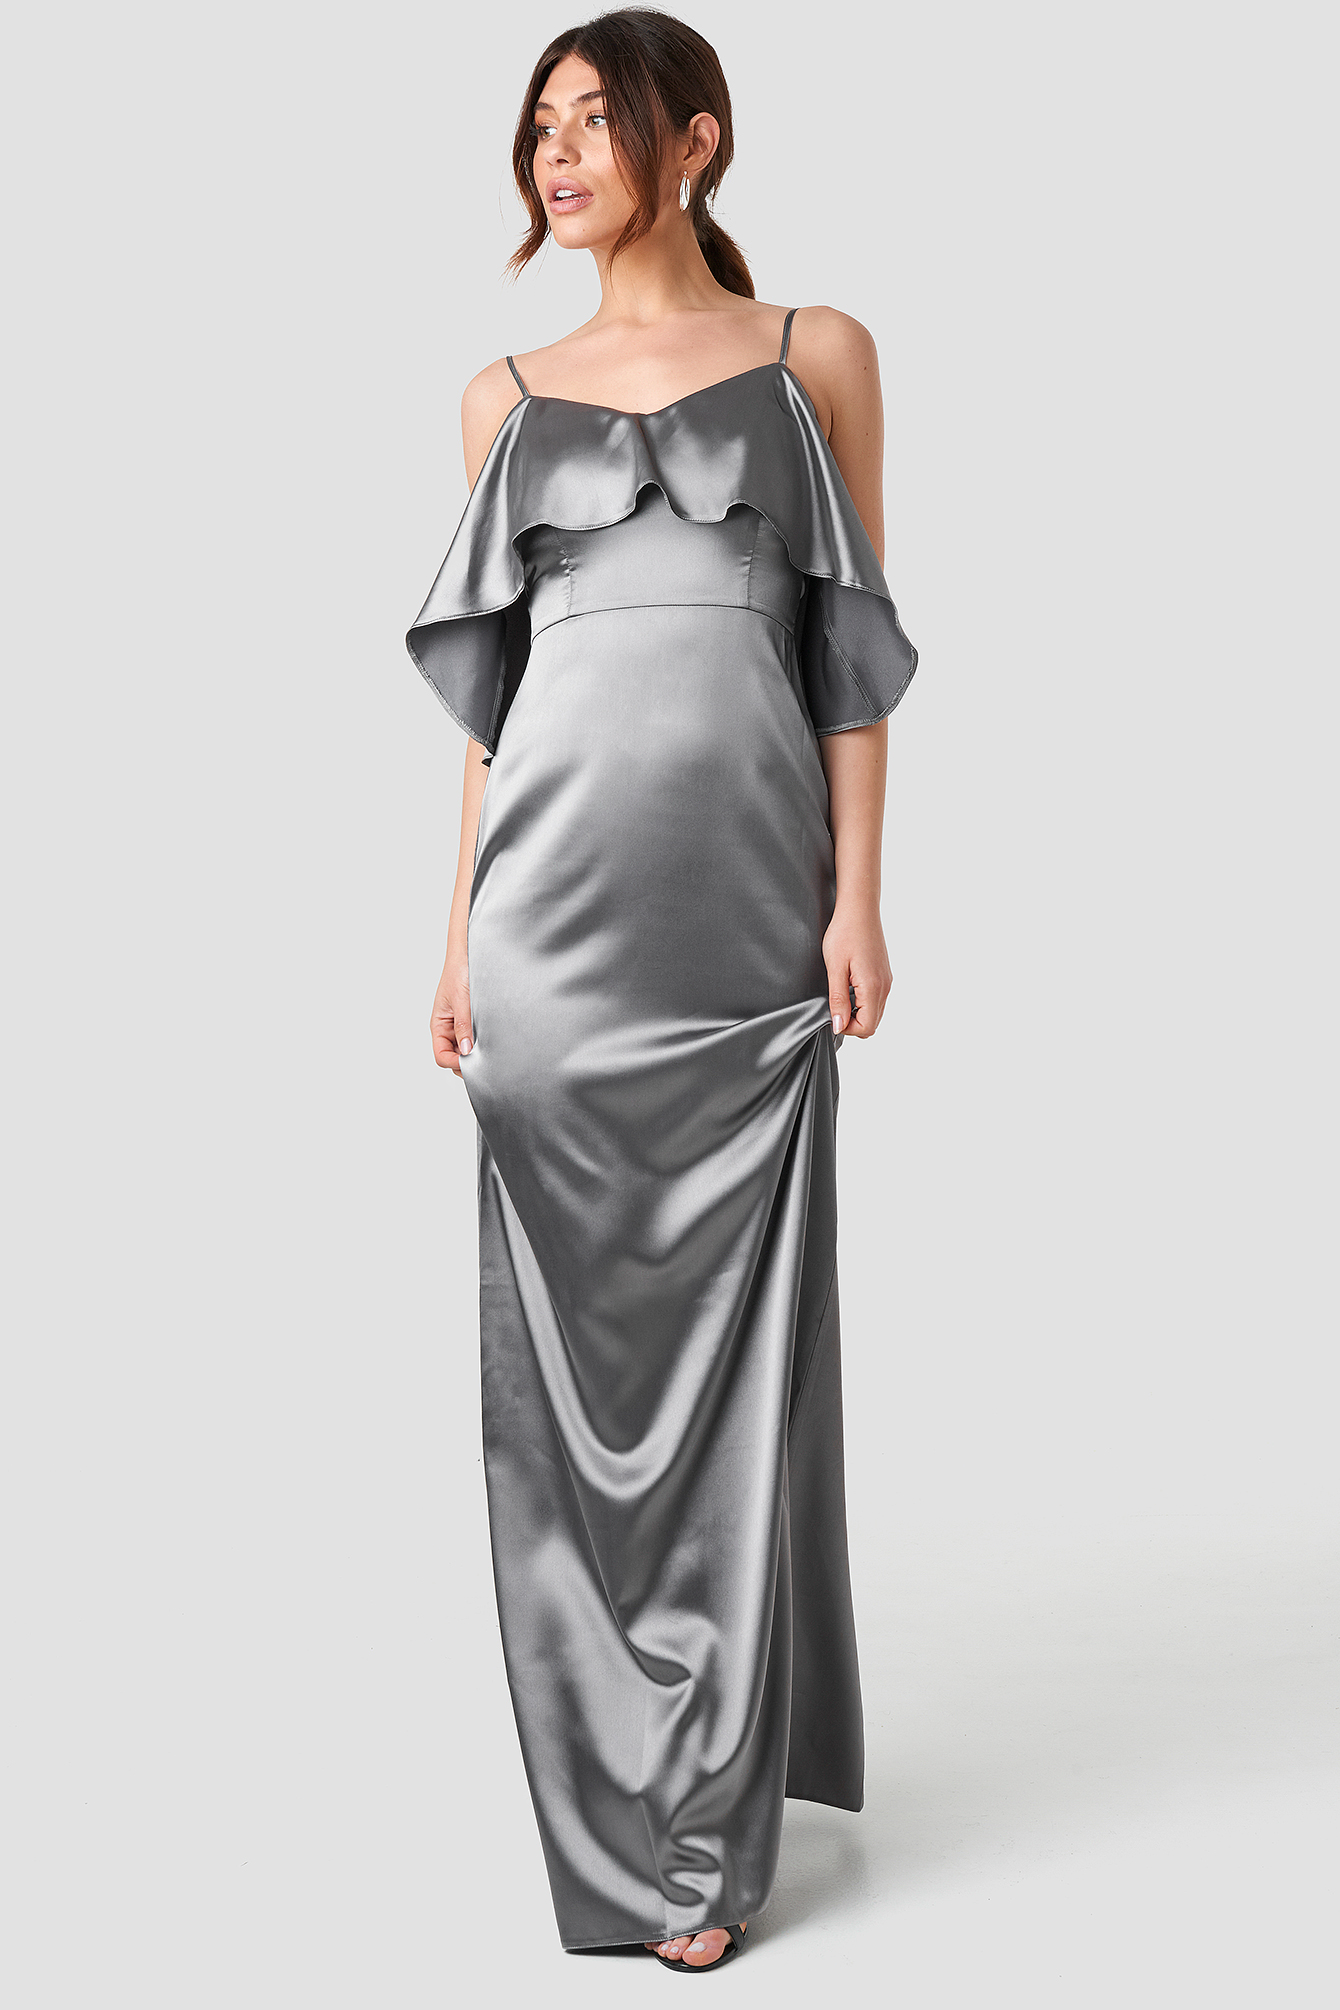 Flywheel Detailed Evening Dress NA-KD.COM